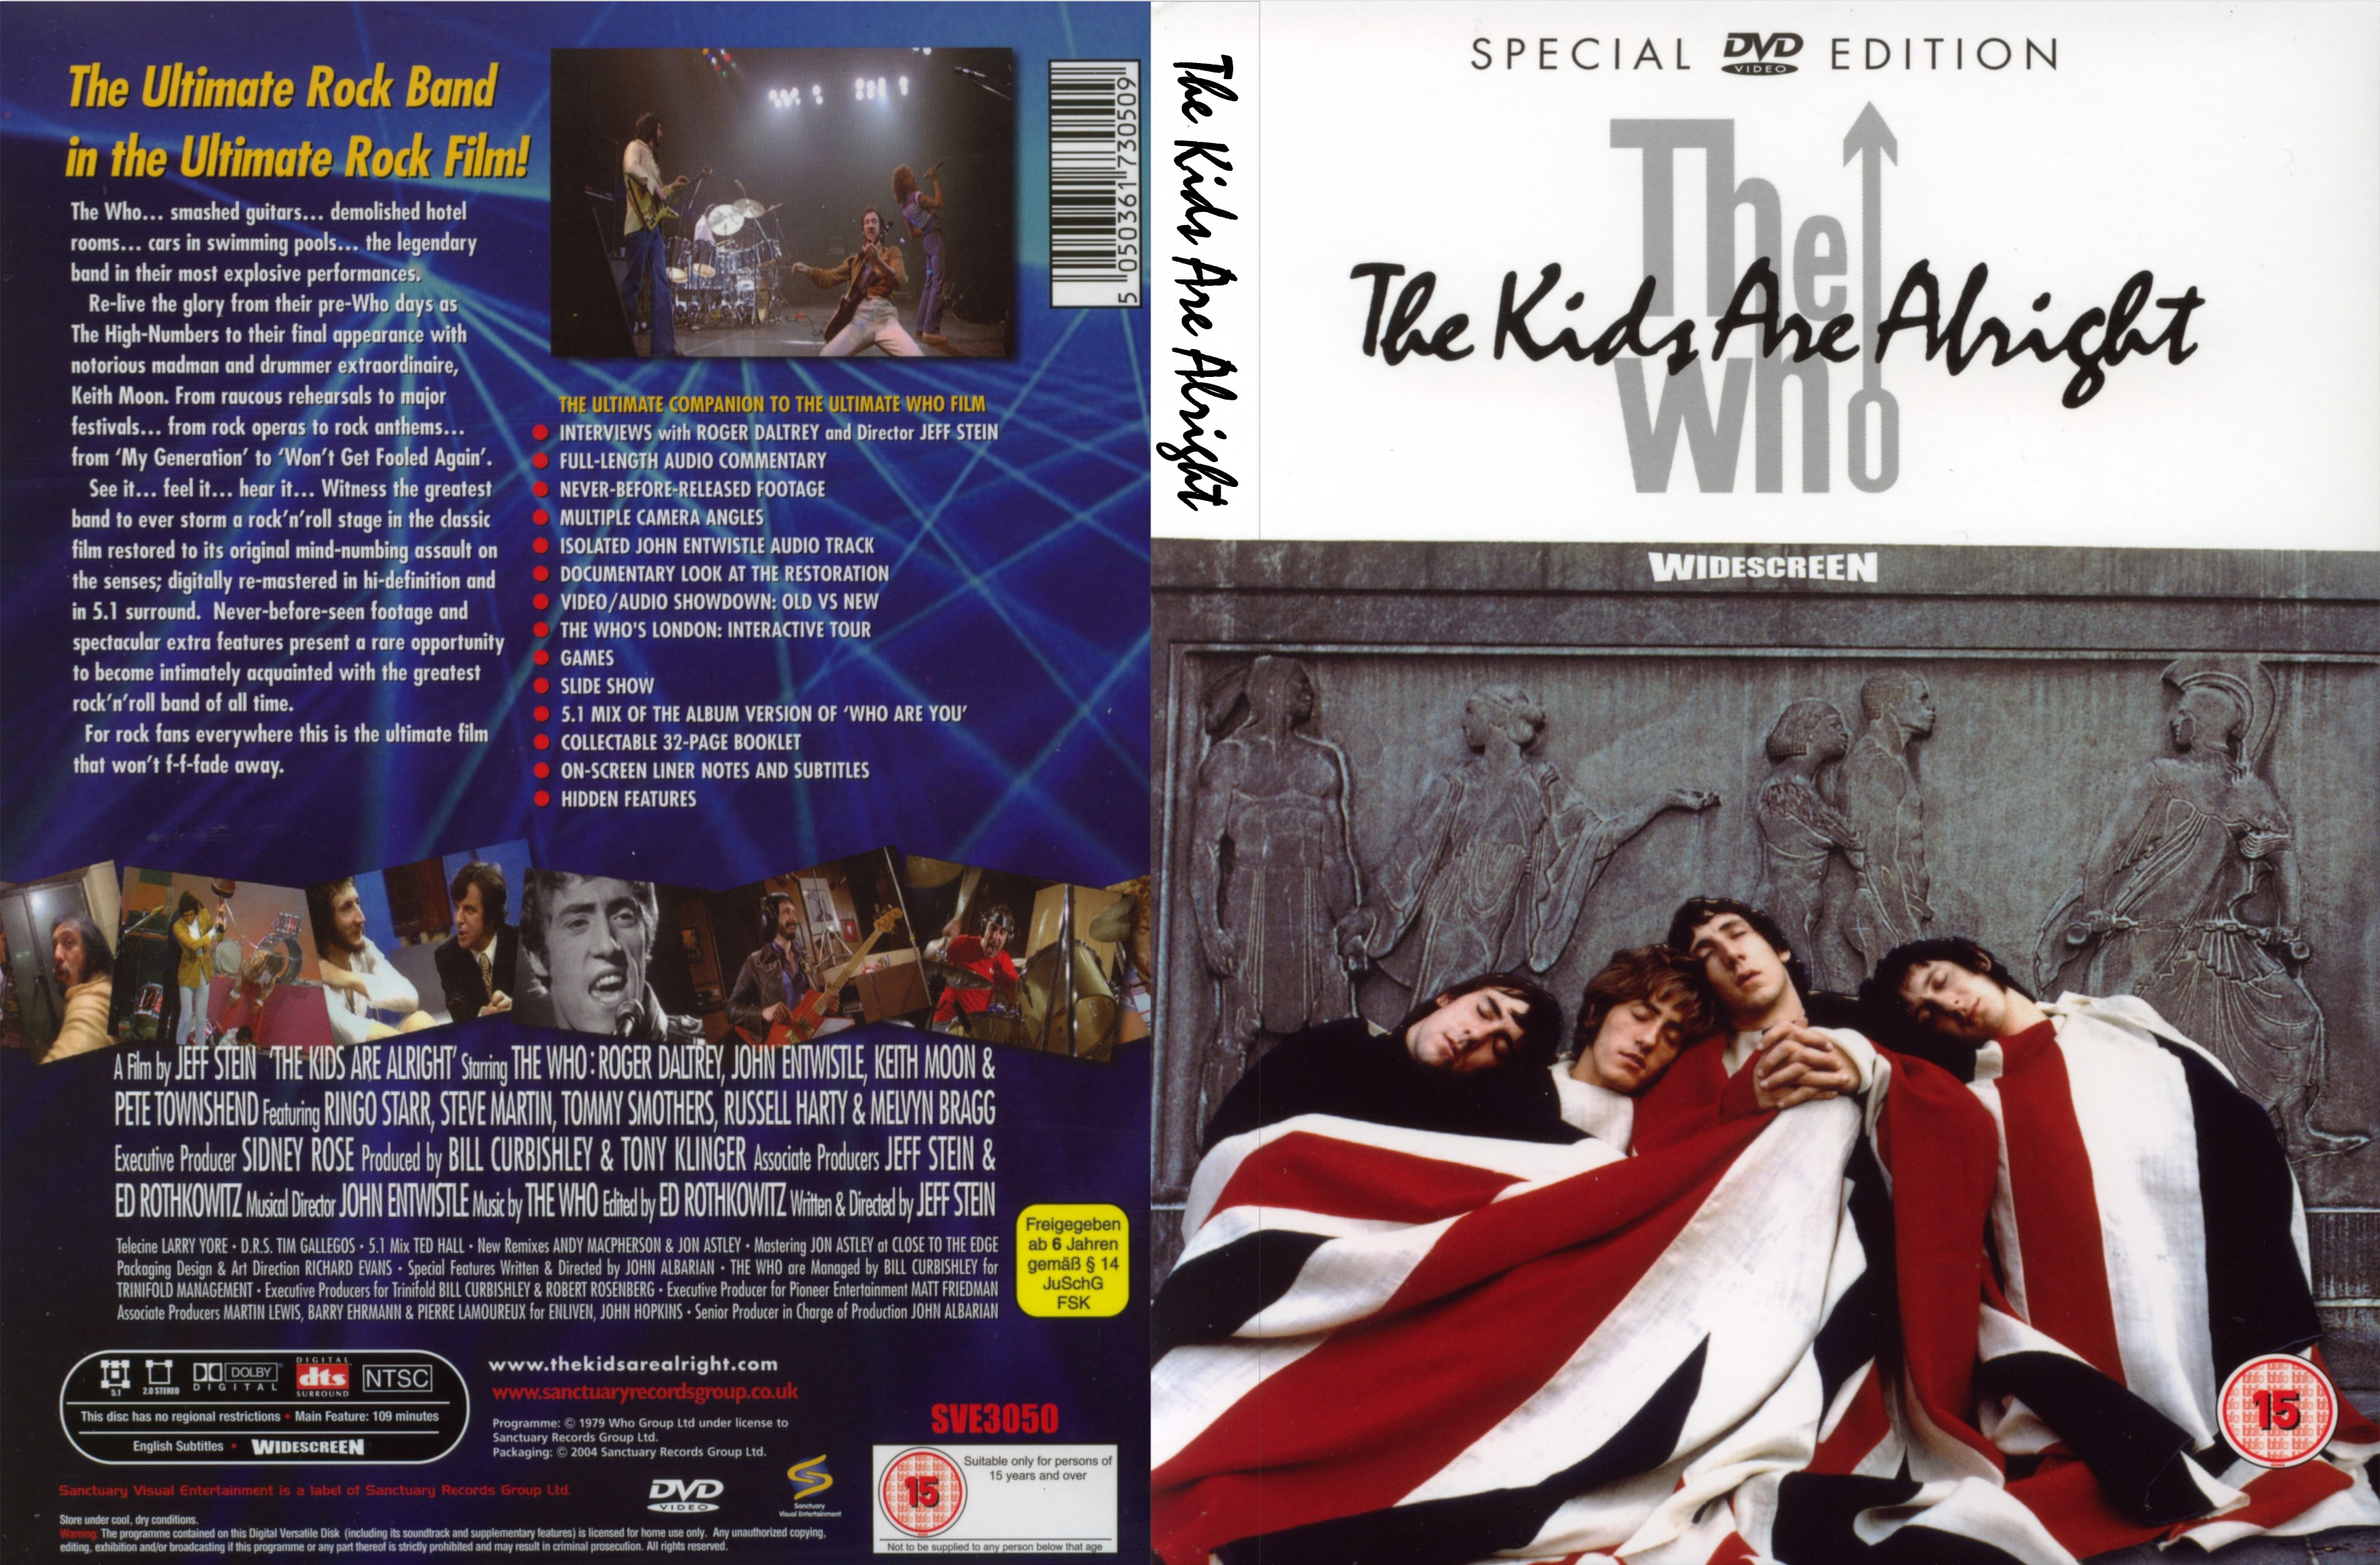 http://www.fharaoncovers.com/covers/The_who_the_kids_are_abright.jpg